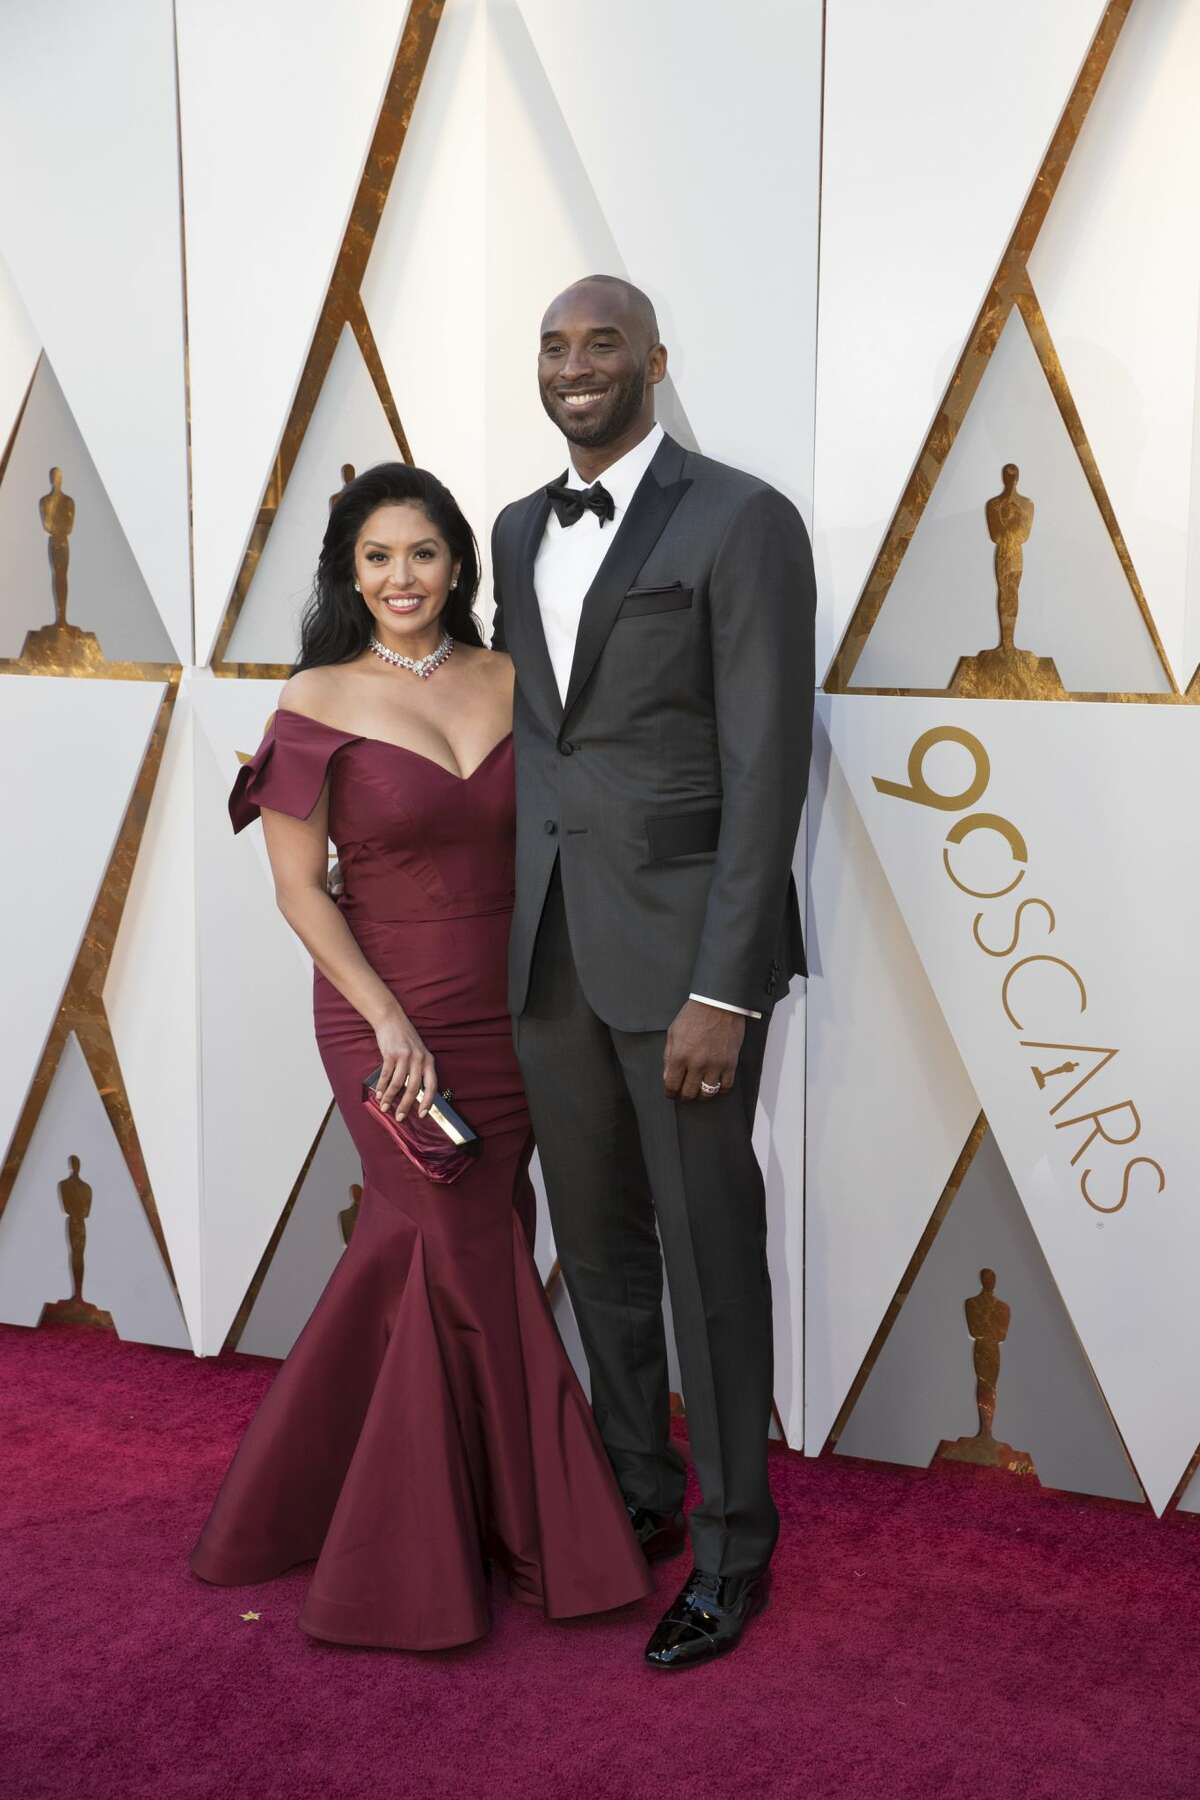 Kobe Bryant and wife Vanessa attend the 90th Annual Academy Awards at Hollywood & Highland Center on March 4, 2018.